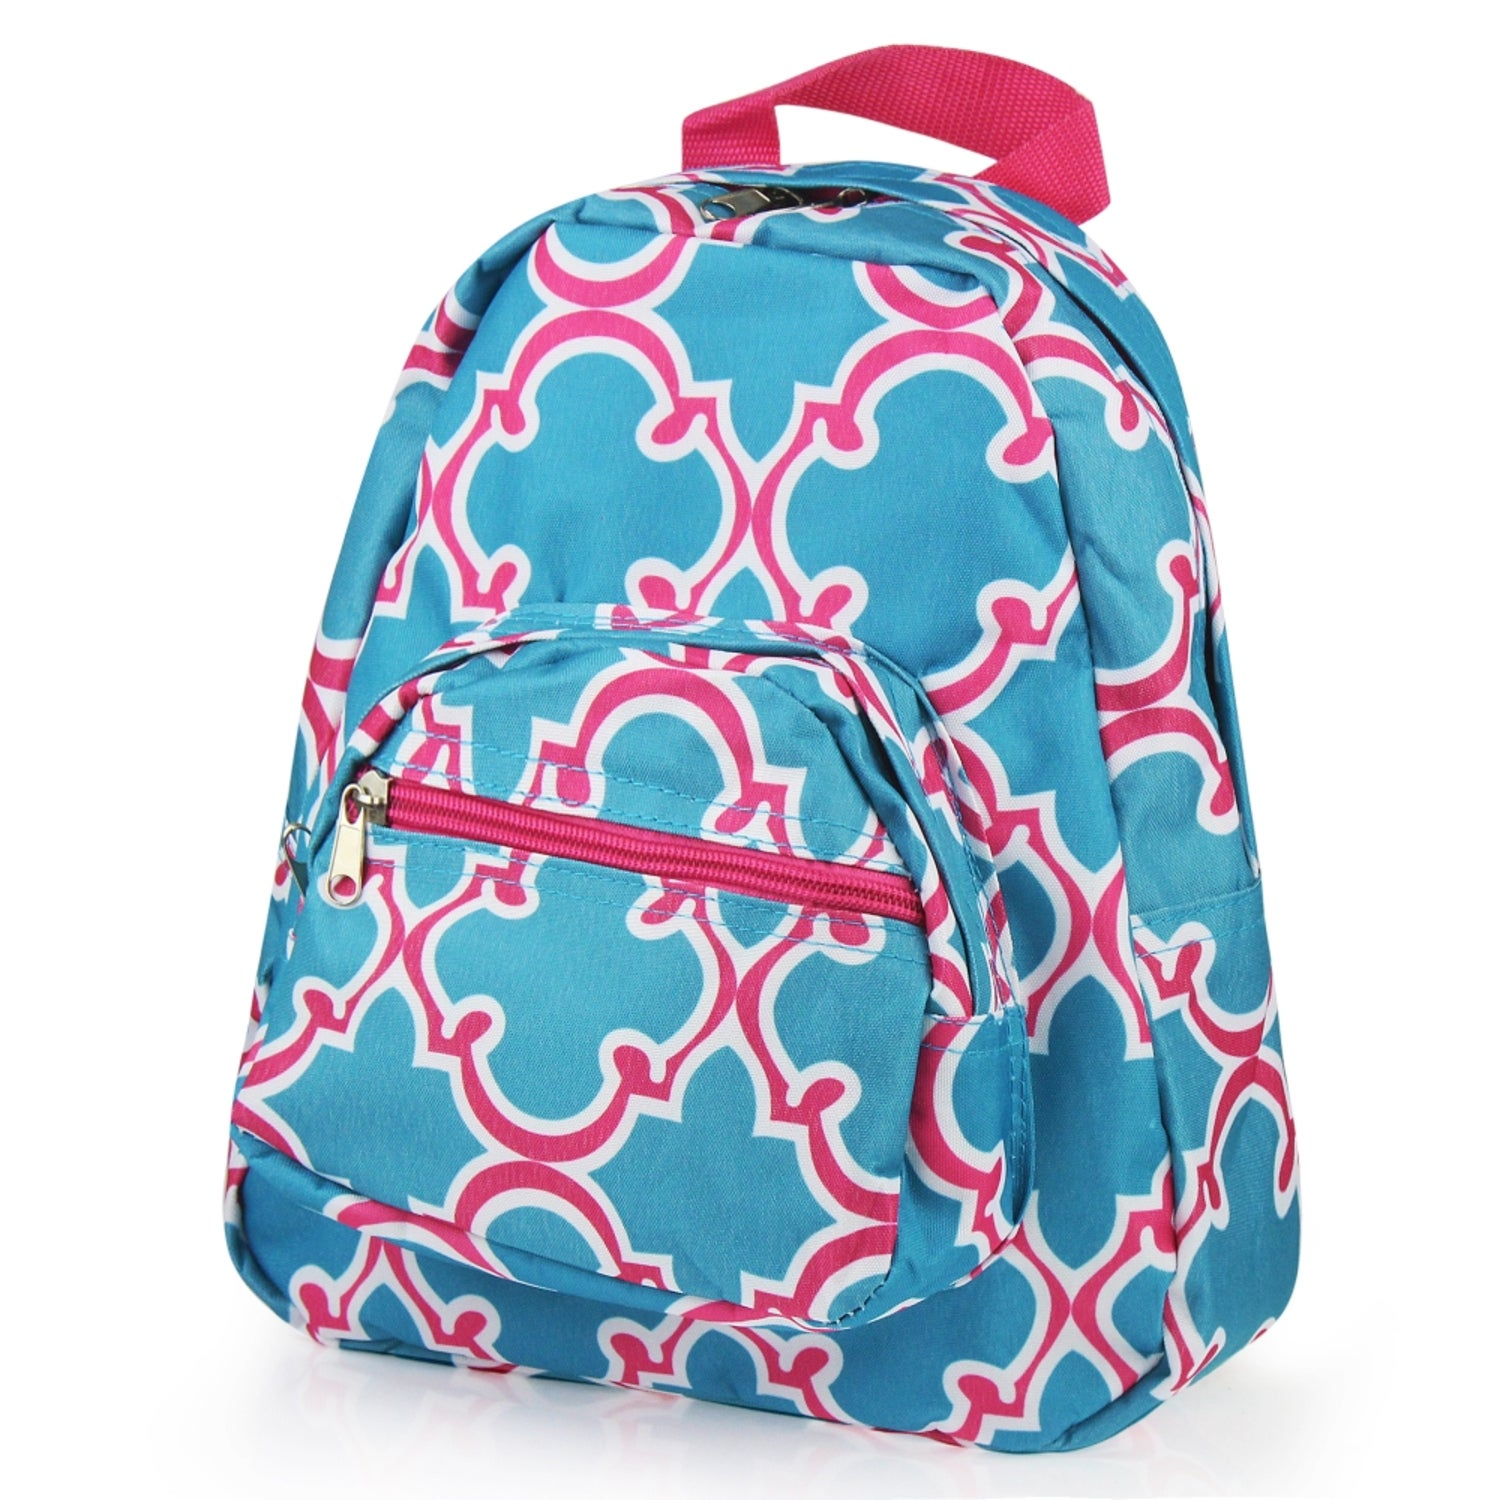 Zodaca Blue Quatrefoil Bright Stylish Kids Small Backpack...